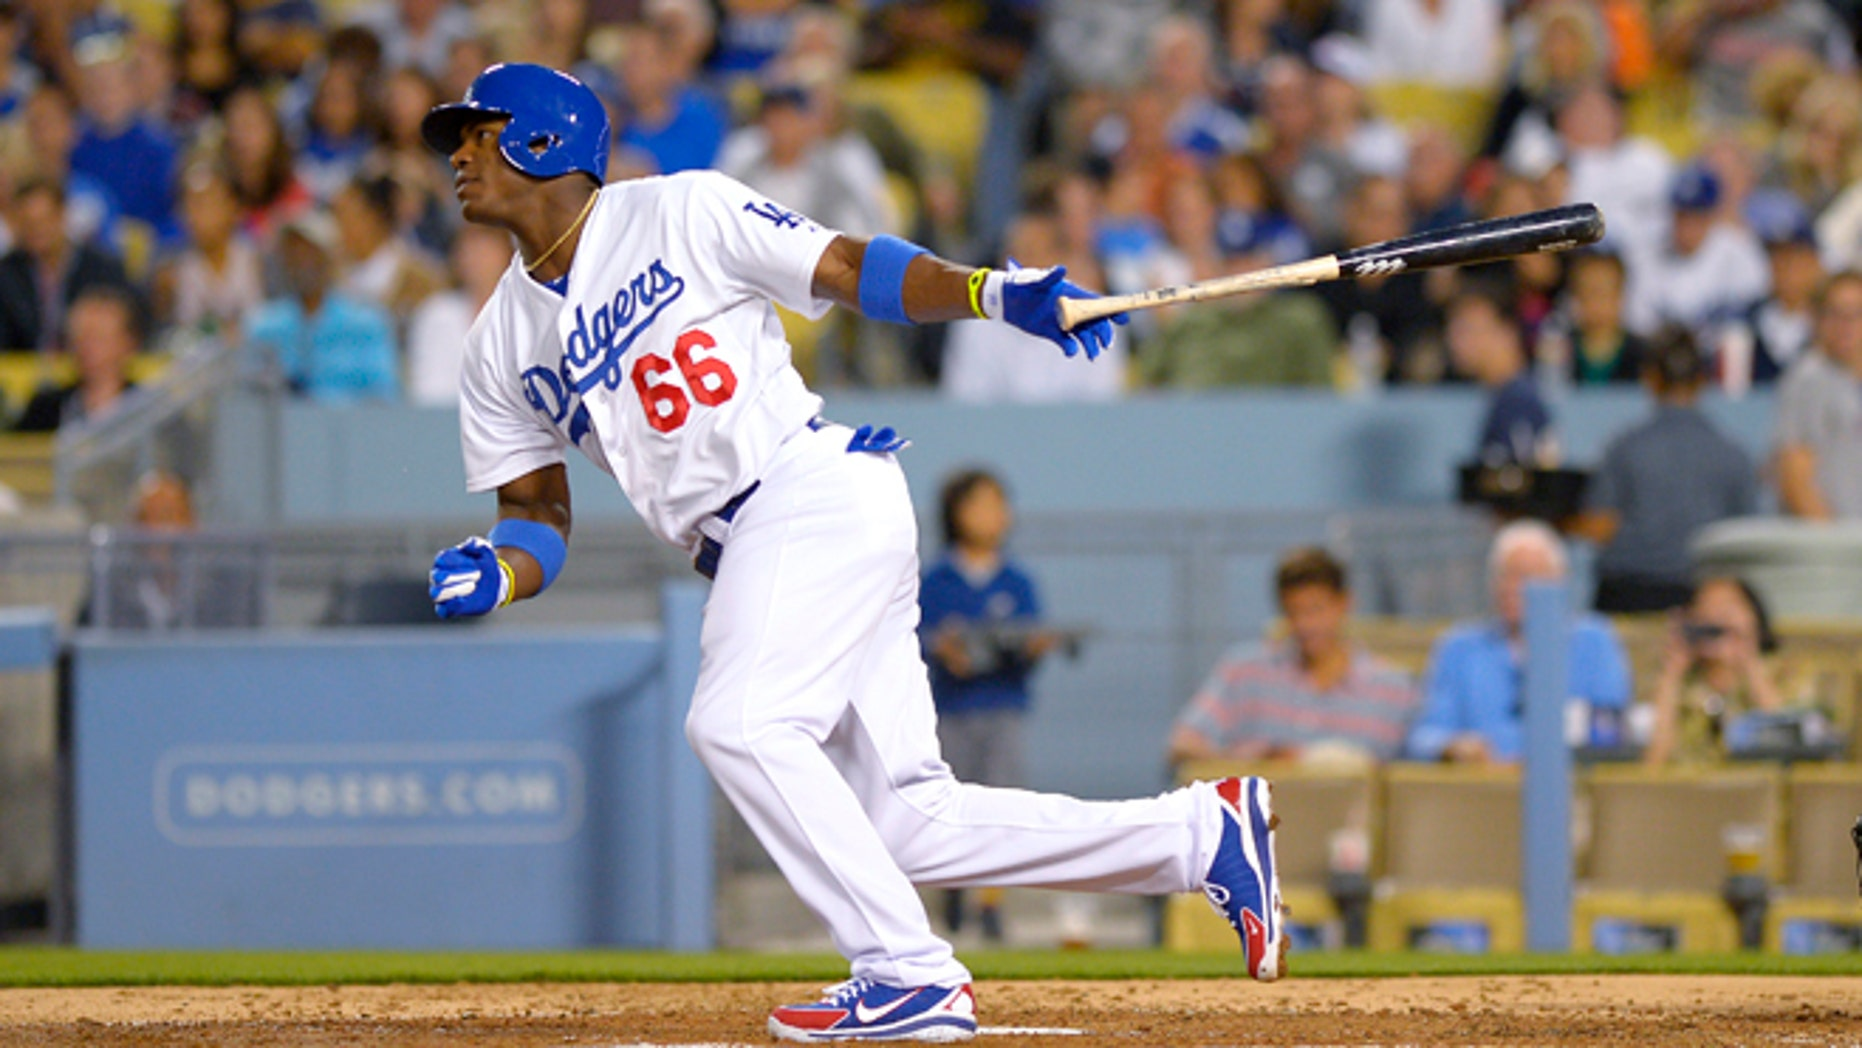 Los Angeles Dodgers Yasiel Puig watches his single in front of Cincinnati Reds catcher Devin Mesoraco during the fourth inning of a baseball game, Thursday, July 25, 2013, in Los Angeles. (AP Photo/Mark J. Terrill)